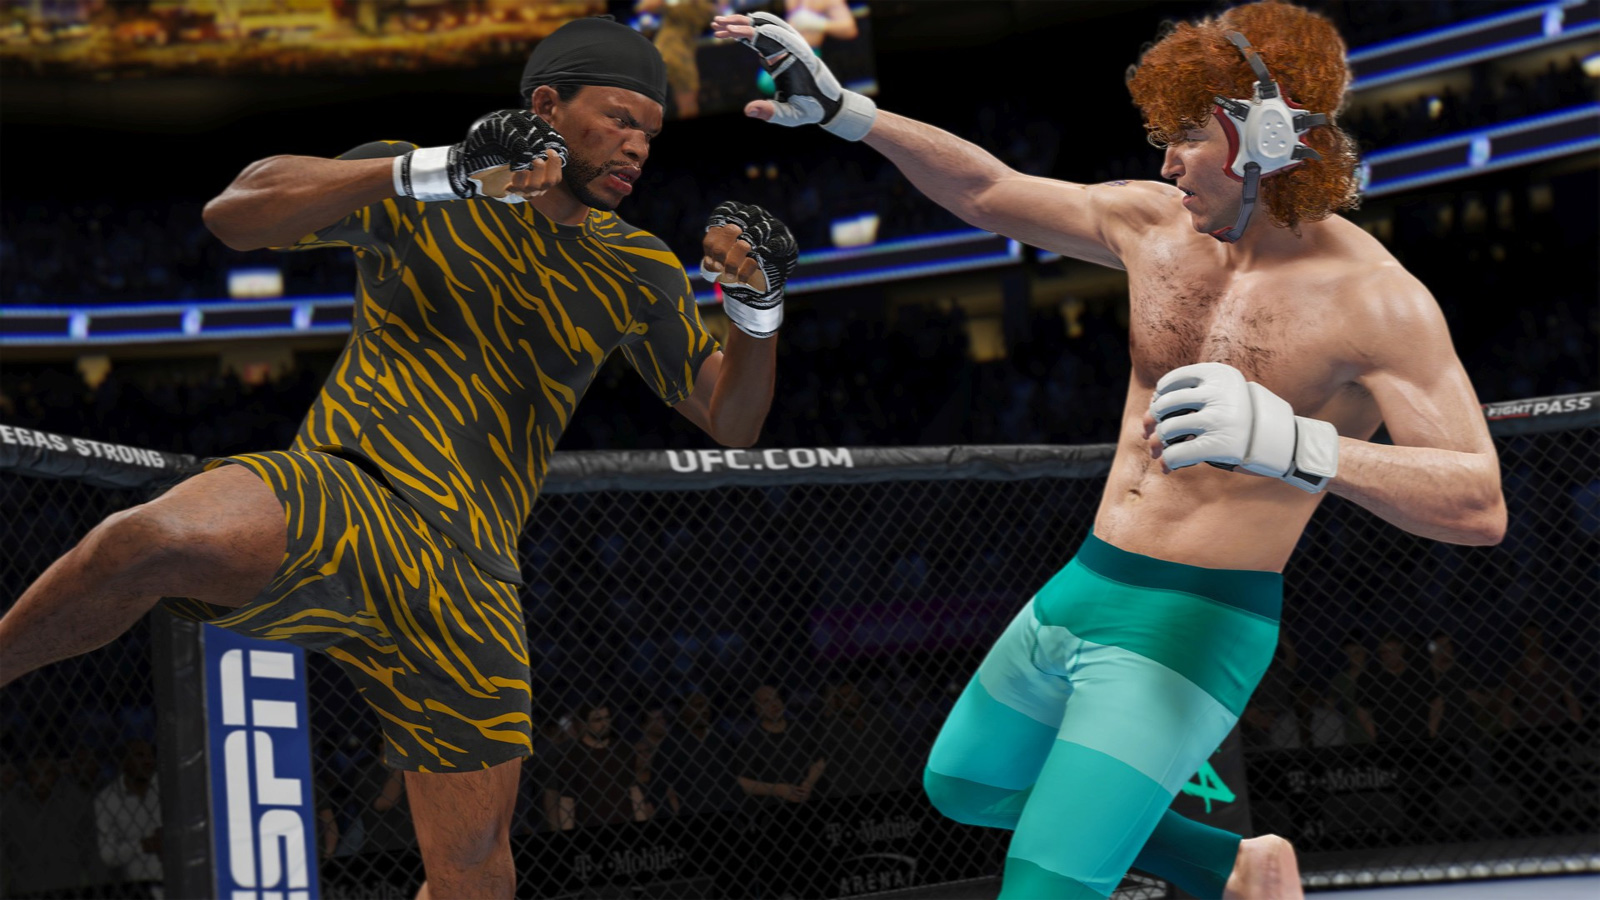 EA's 'UFC 4' focuses on your fighter's backstory | Engadget